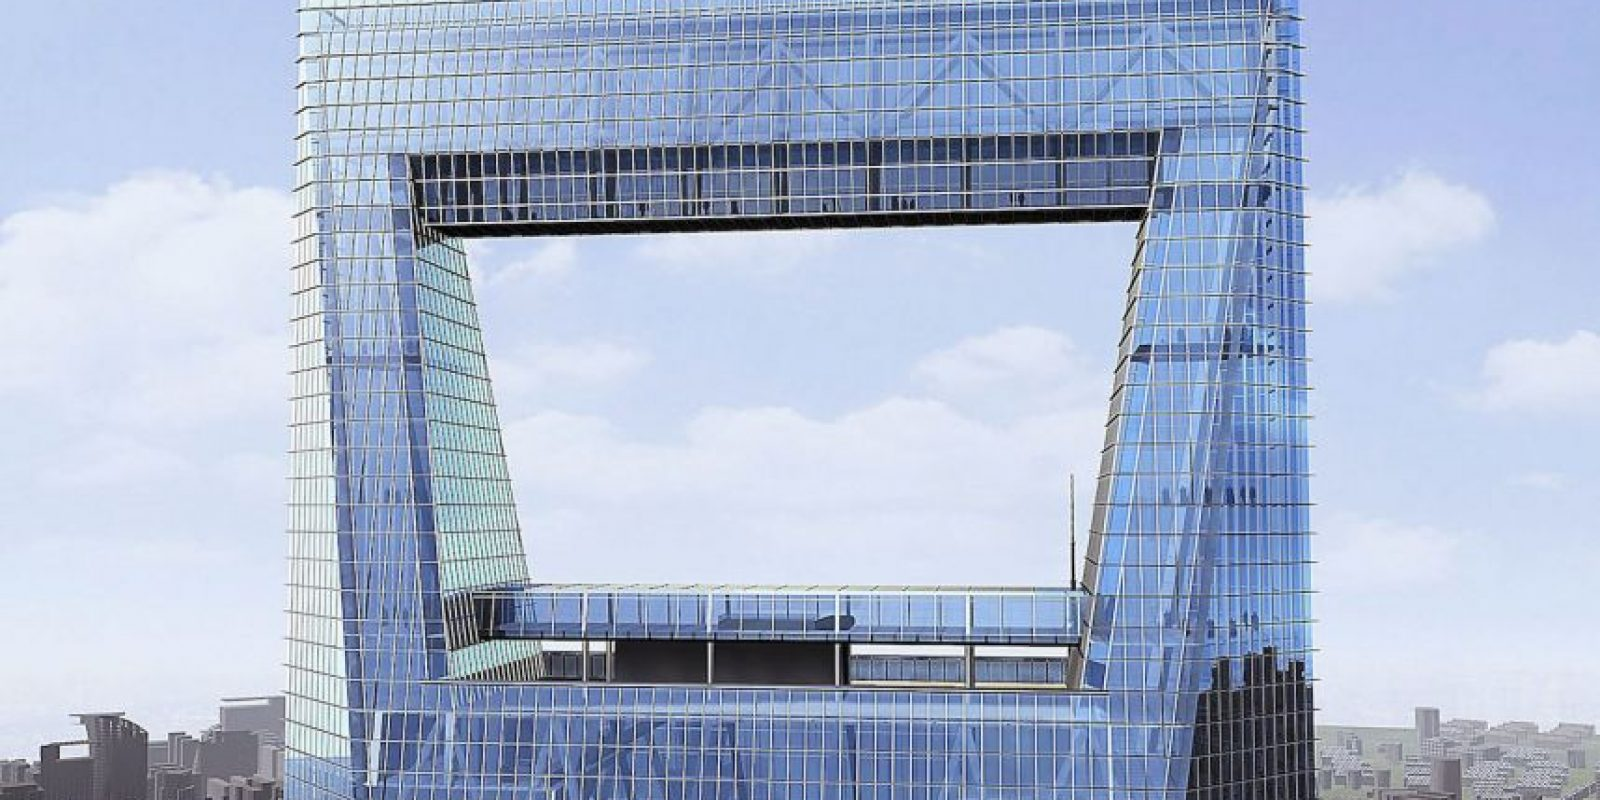 4. Shanghai World Financial Center, China Foto:Getty Images